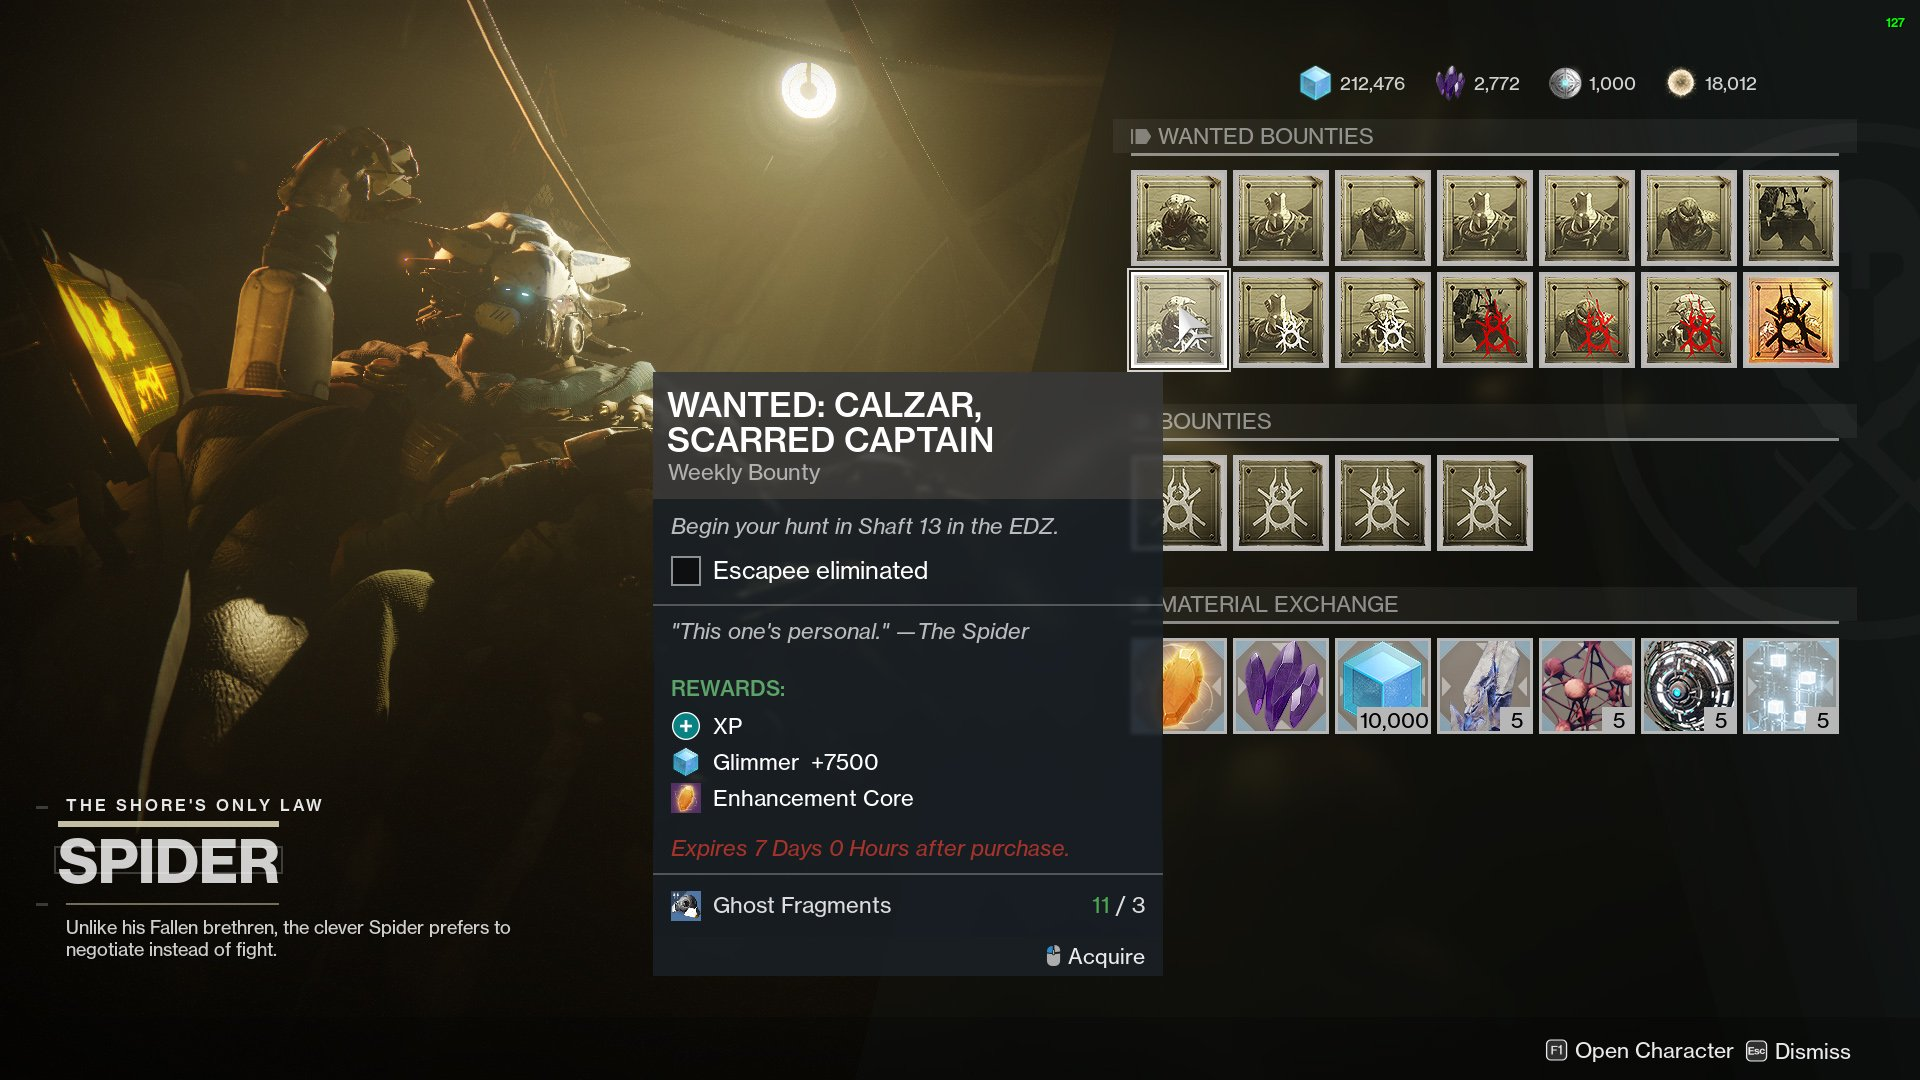 destiny 2 spider wanted bounty calzar scarred captain